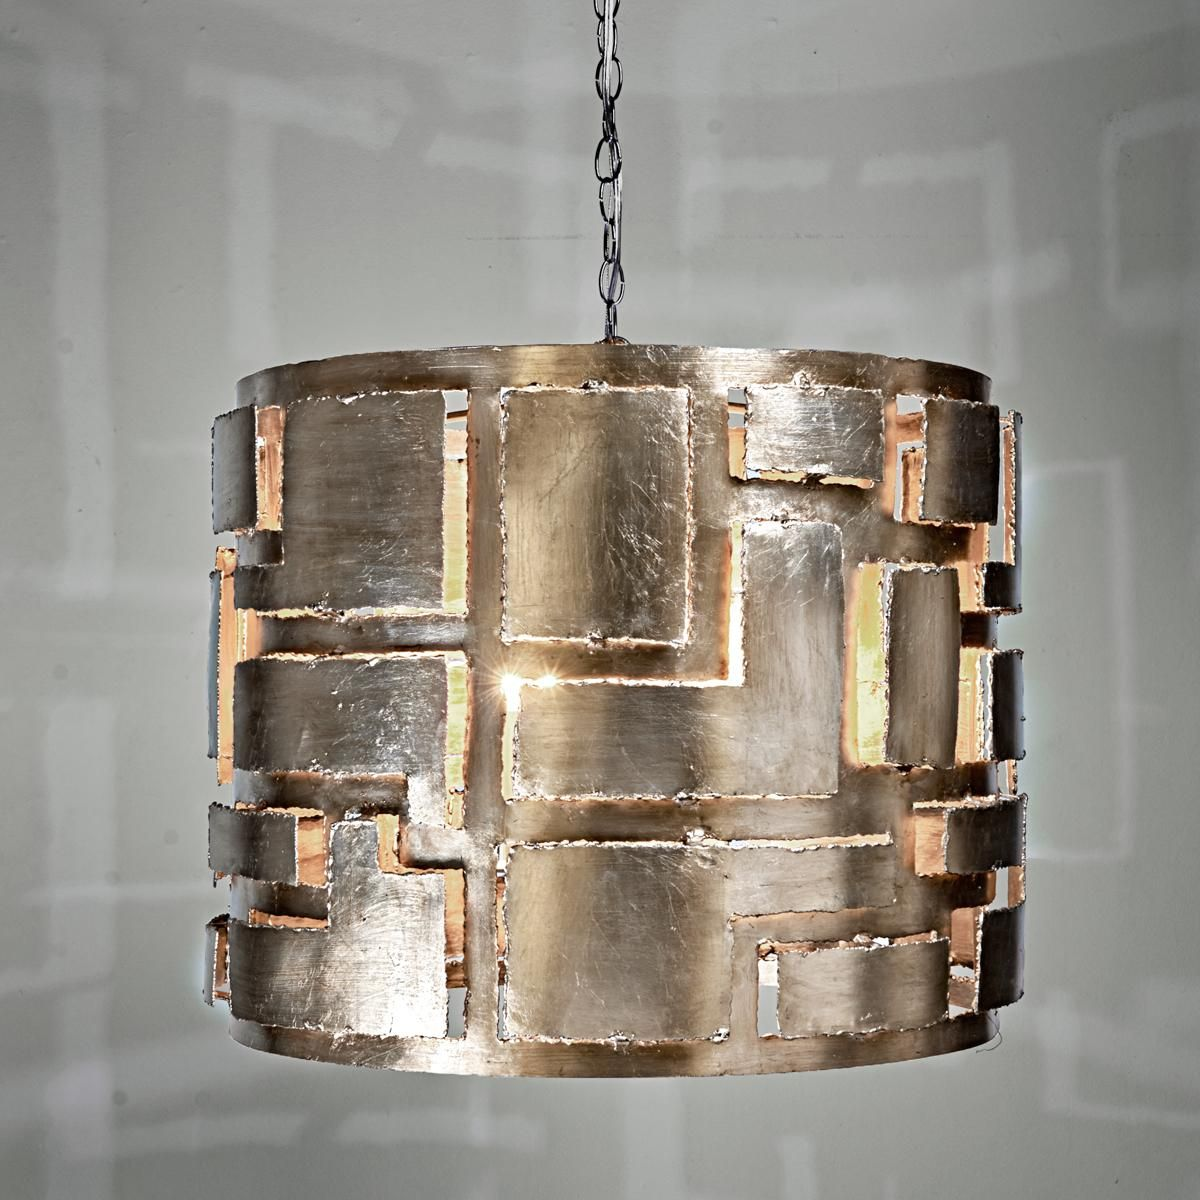 Metal Cut Out Chandelier This Brutalist style